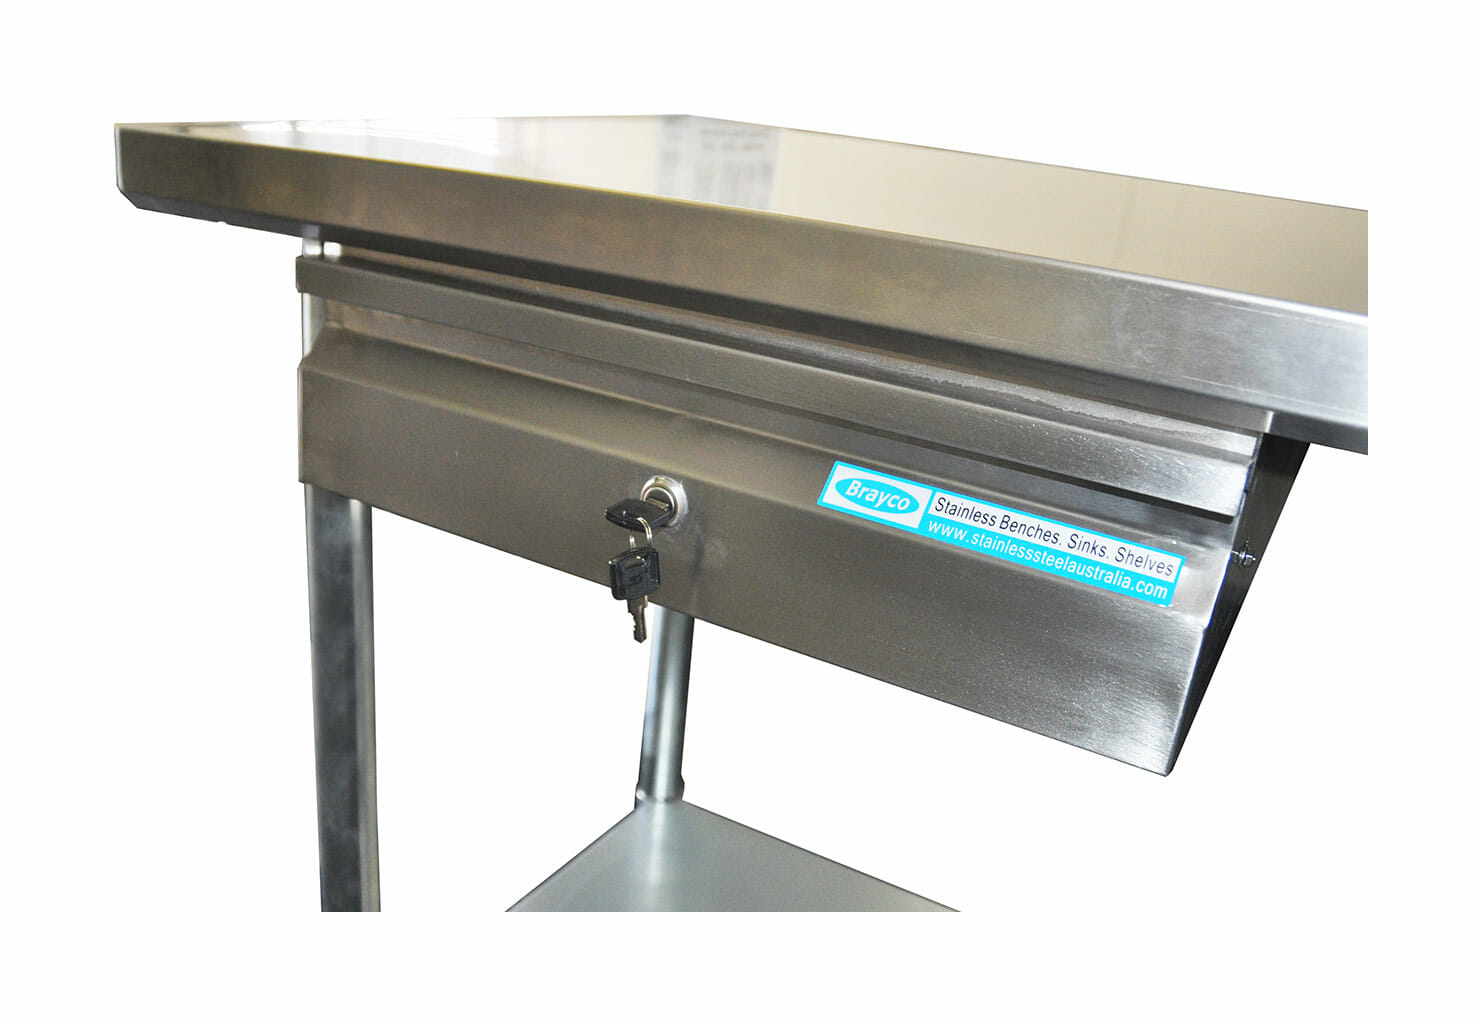 Underbench Drawer for Catering Benches,